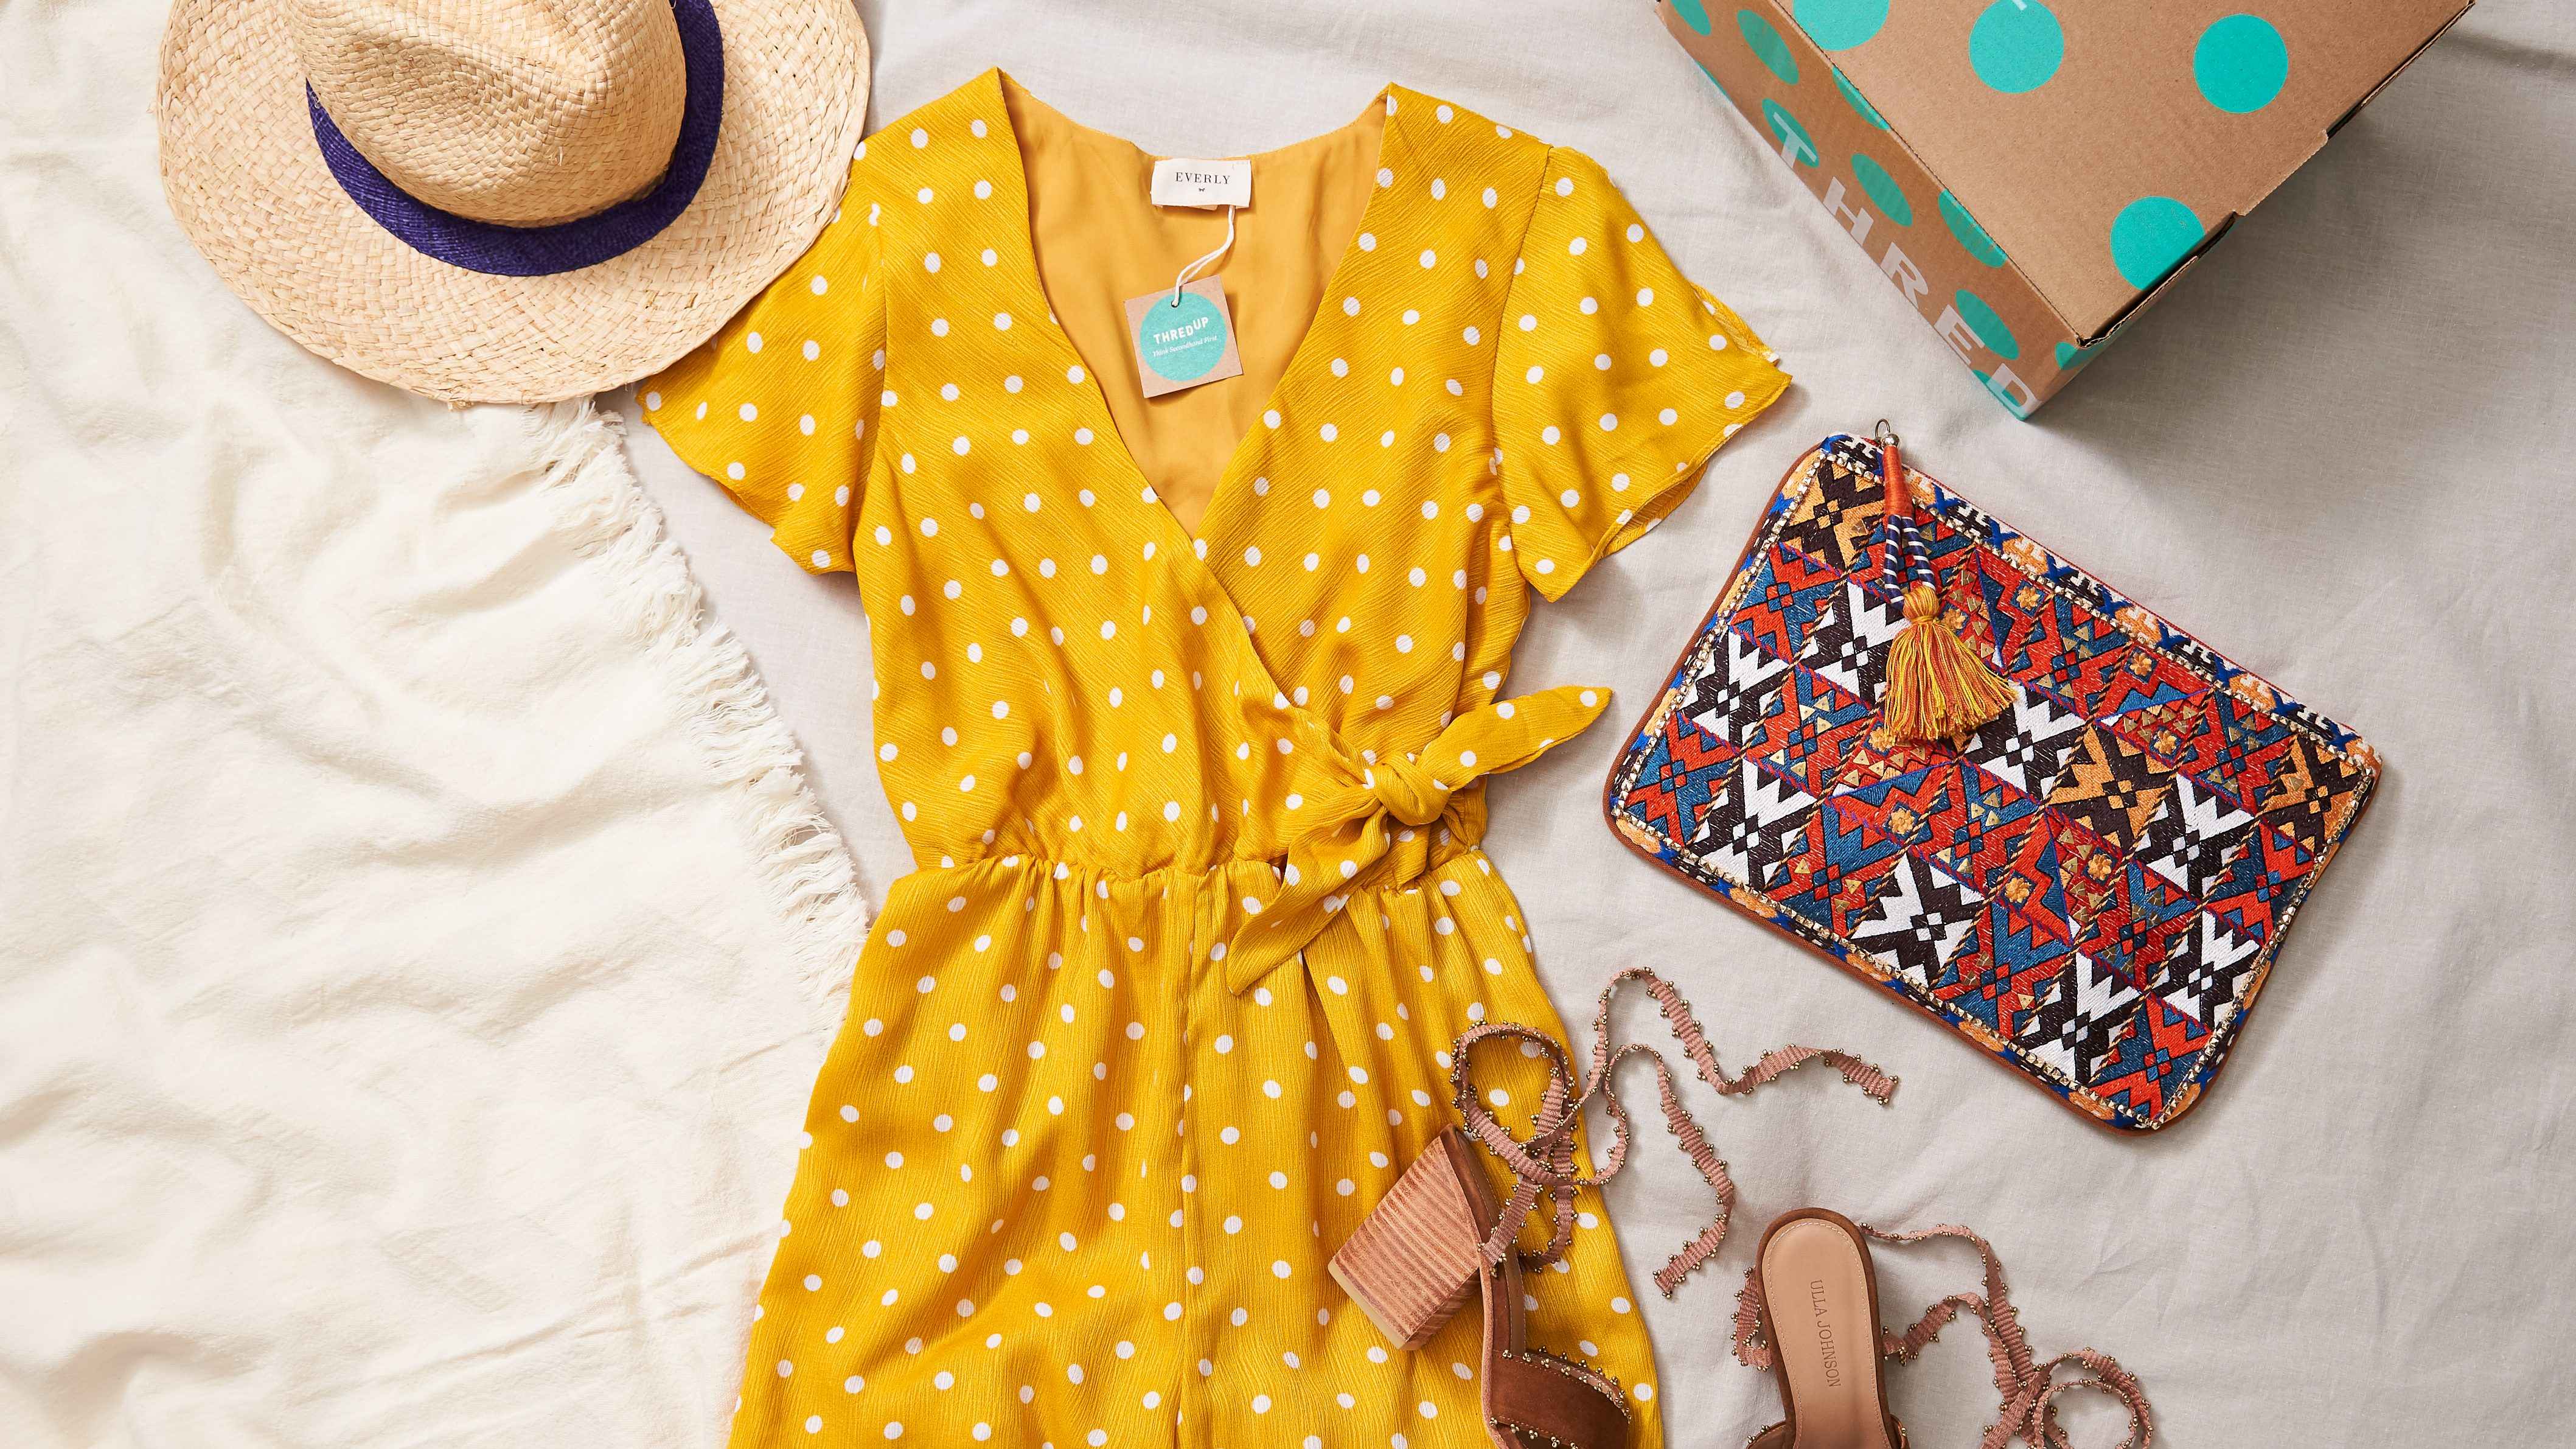 A yellow dress and accessories such as a bag and clothes lie flat on a bed